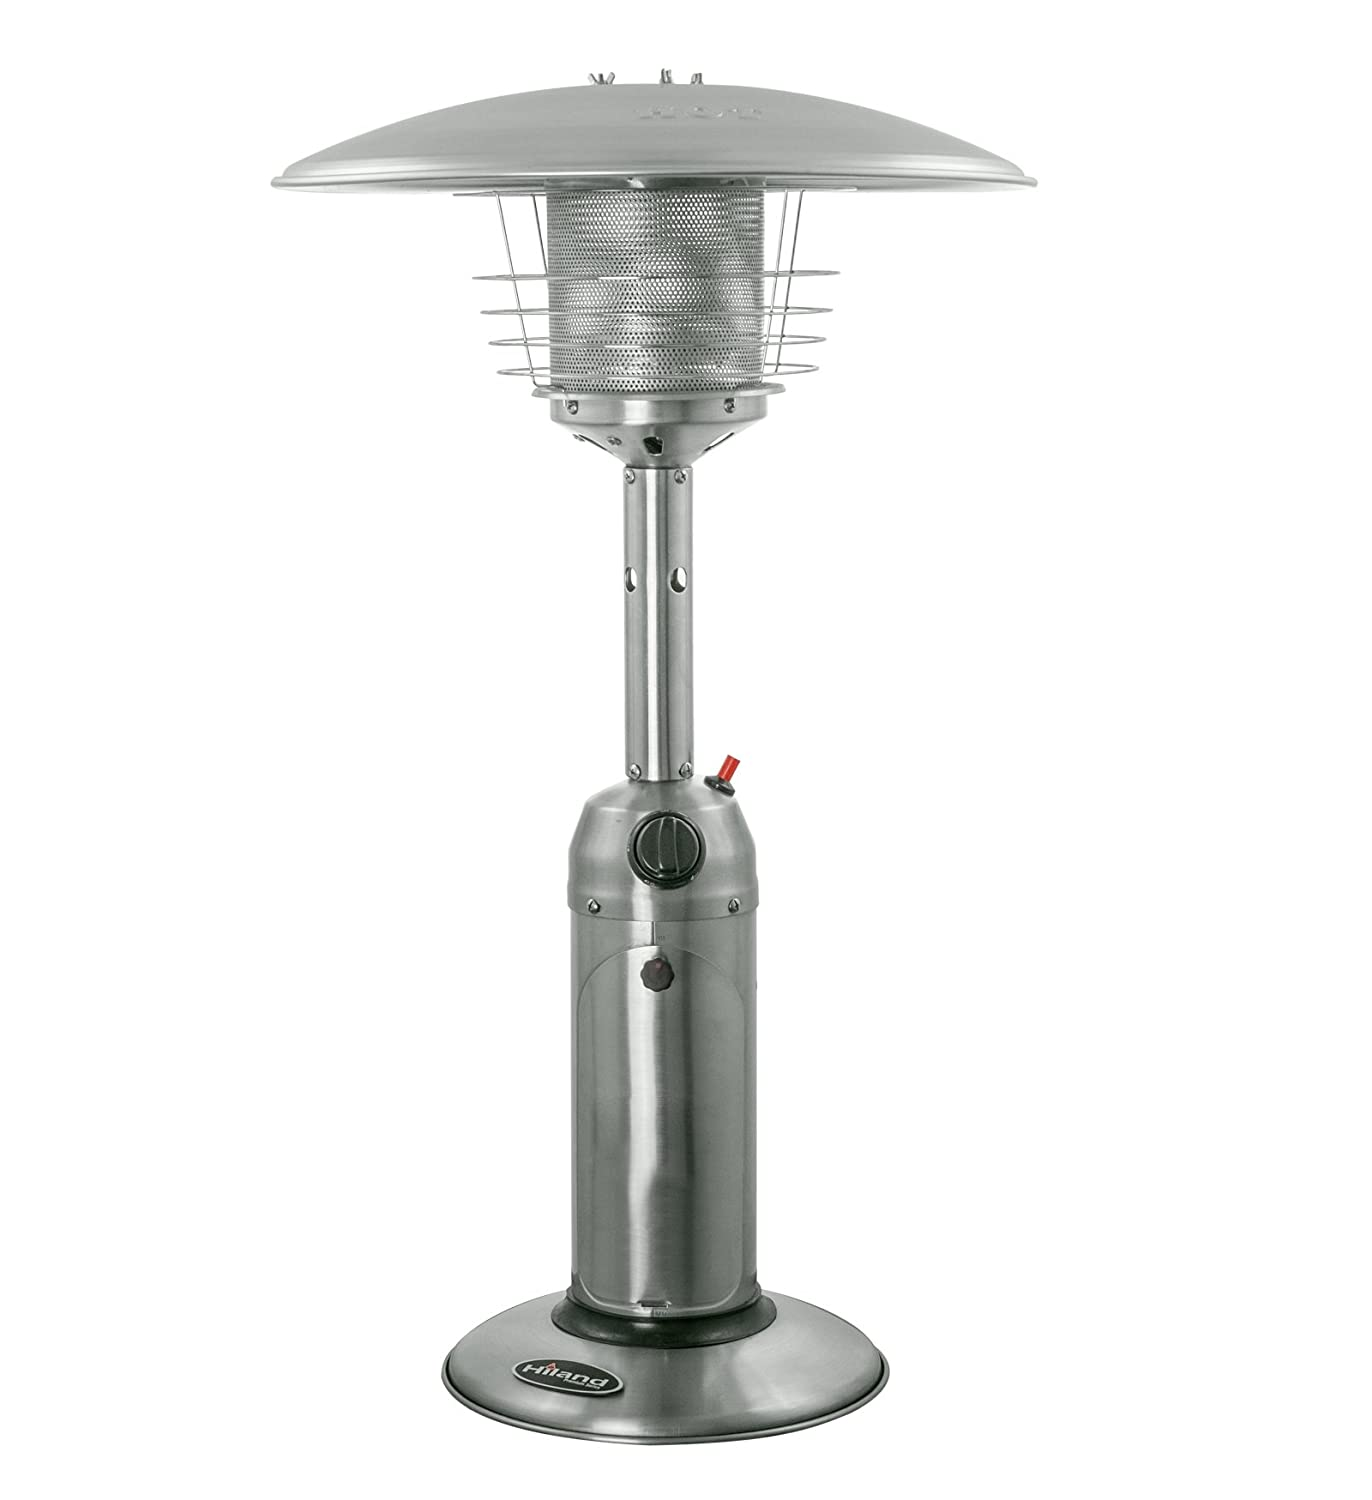 Amazon.com  AZ Patio Heaters HLDS032-B Portable Table Top Stainless Steel Patio Heater Stainless Finish  Portable Outdoor Heating  Garden u0026 Outdoor  sc 1 st  Amazon.com & Amazon.com : AZ Patio Heaters HLDS032-B Portable Table Top Stainless ...